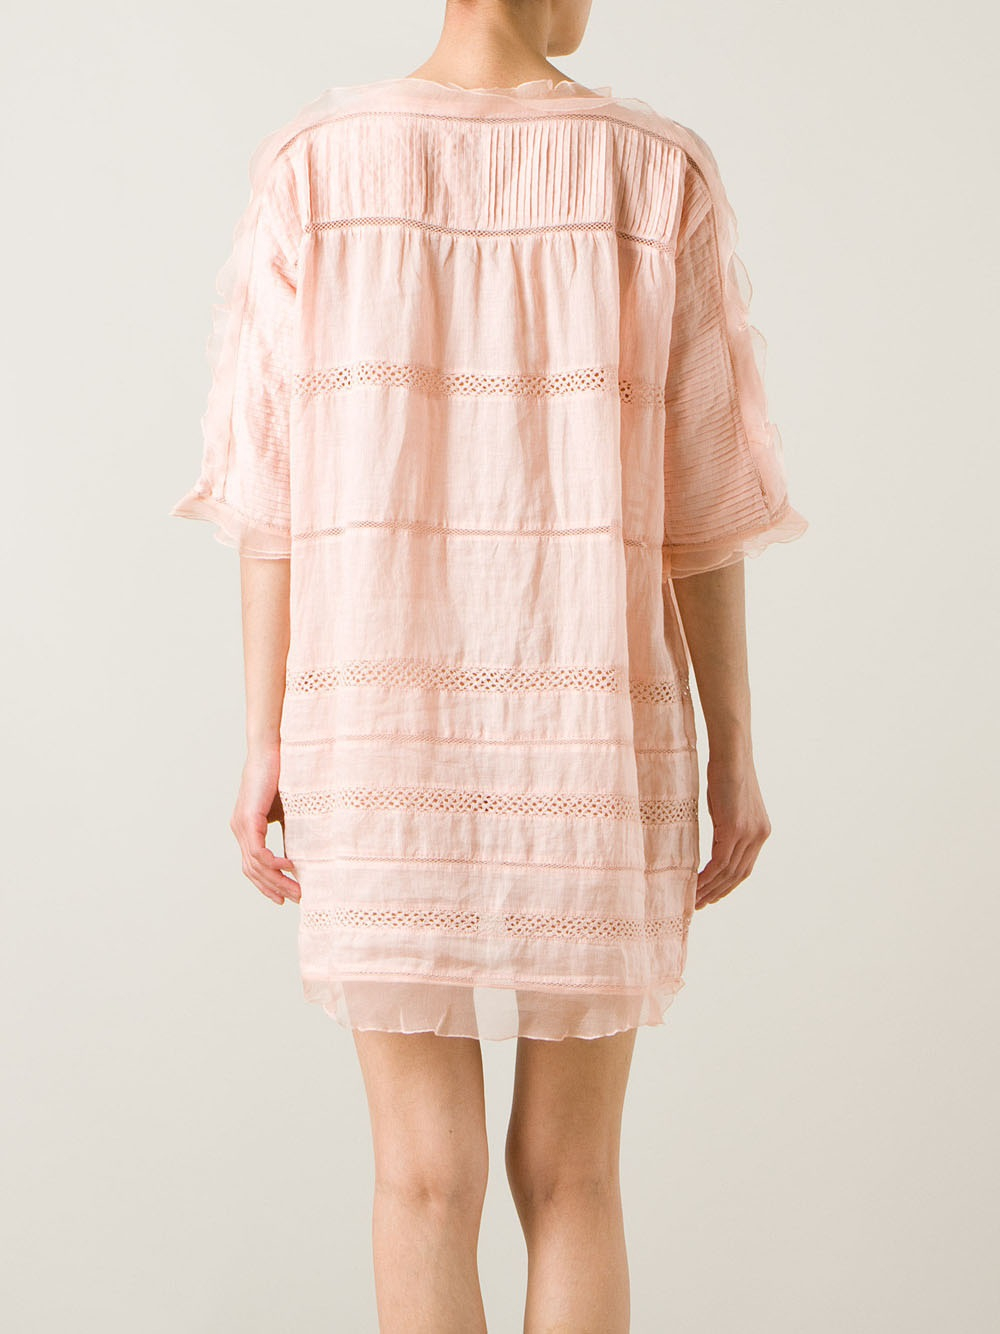 739409c460c Isabel Marant Loose Fit Dress in Pink - Lyst